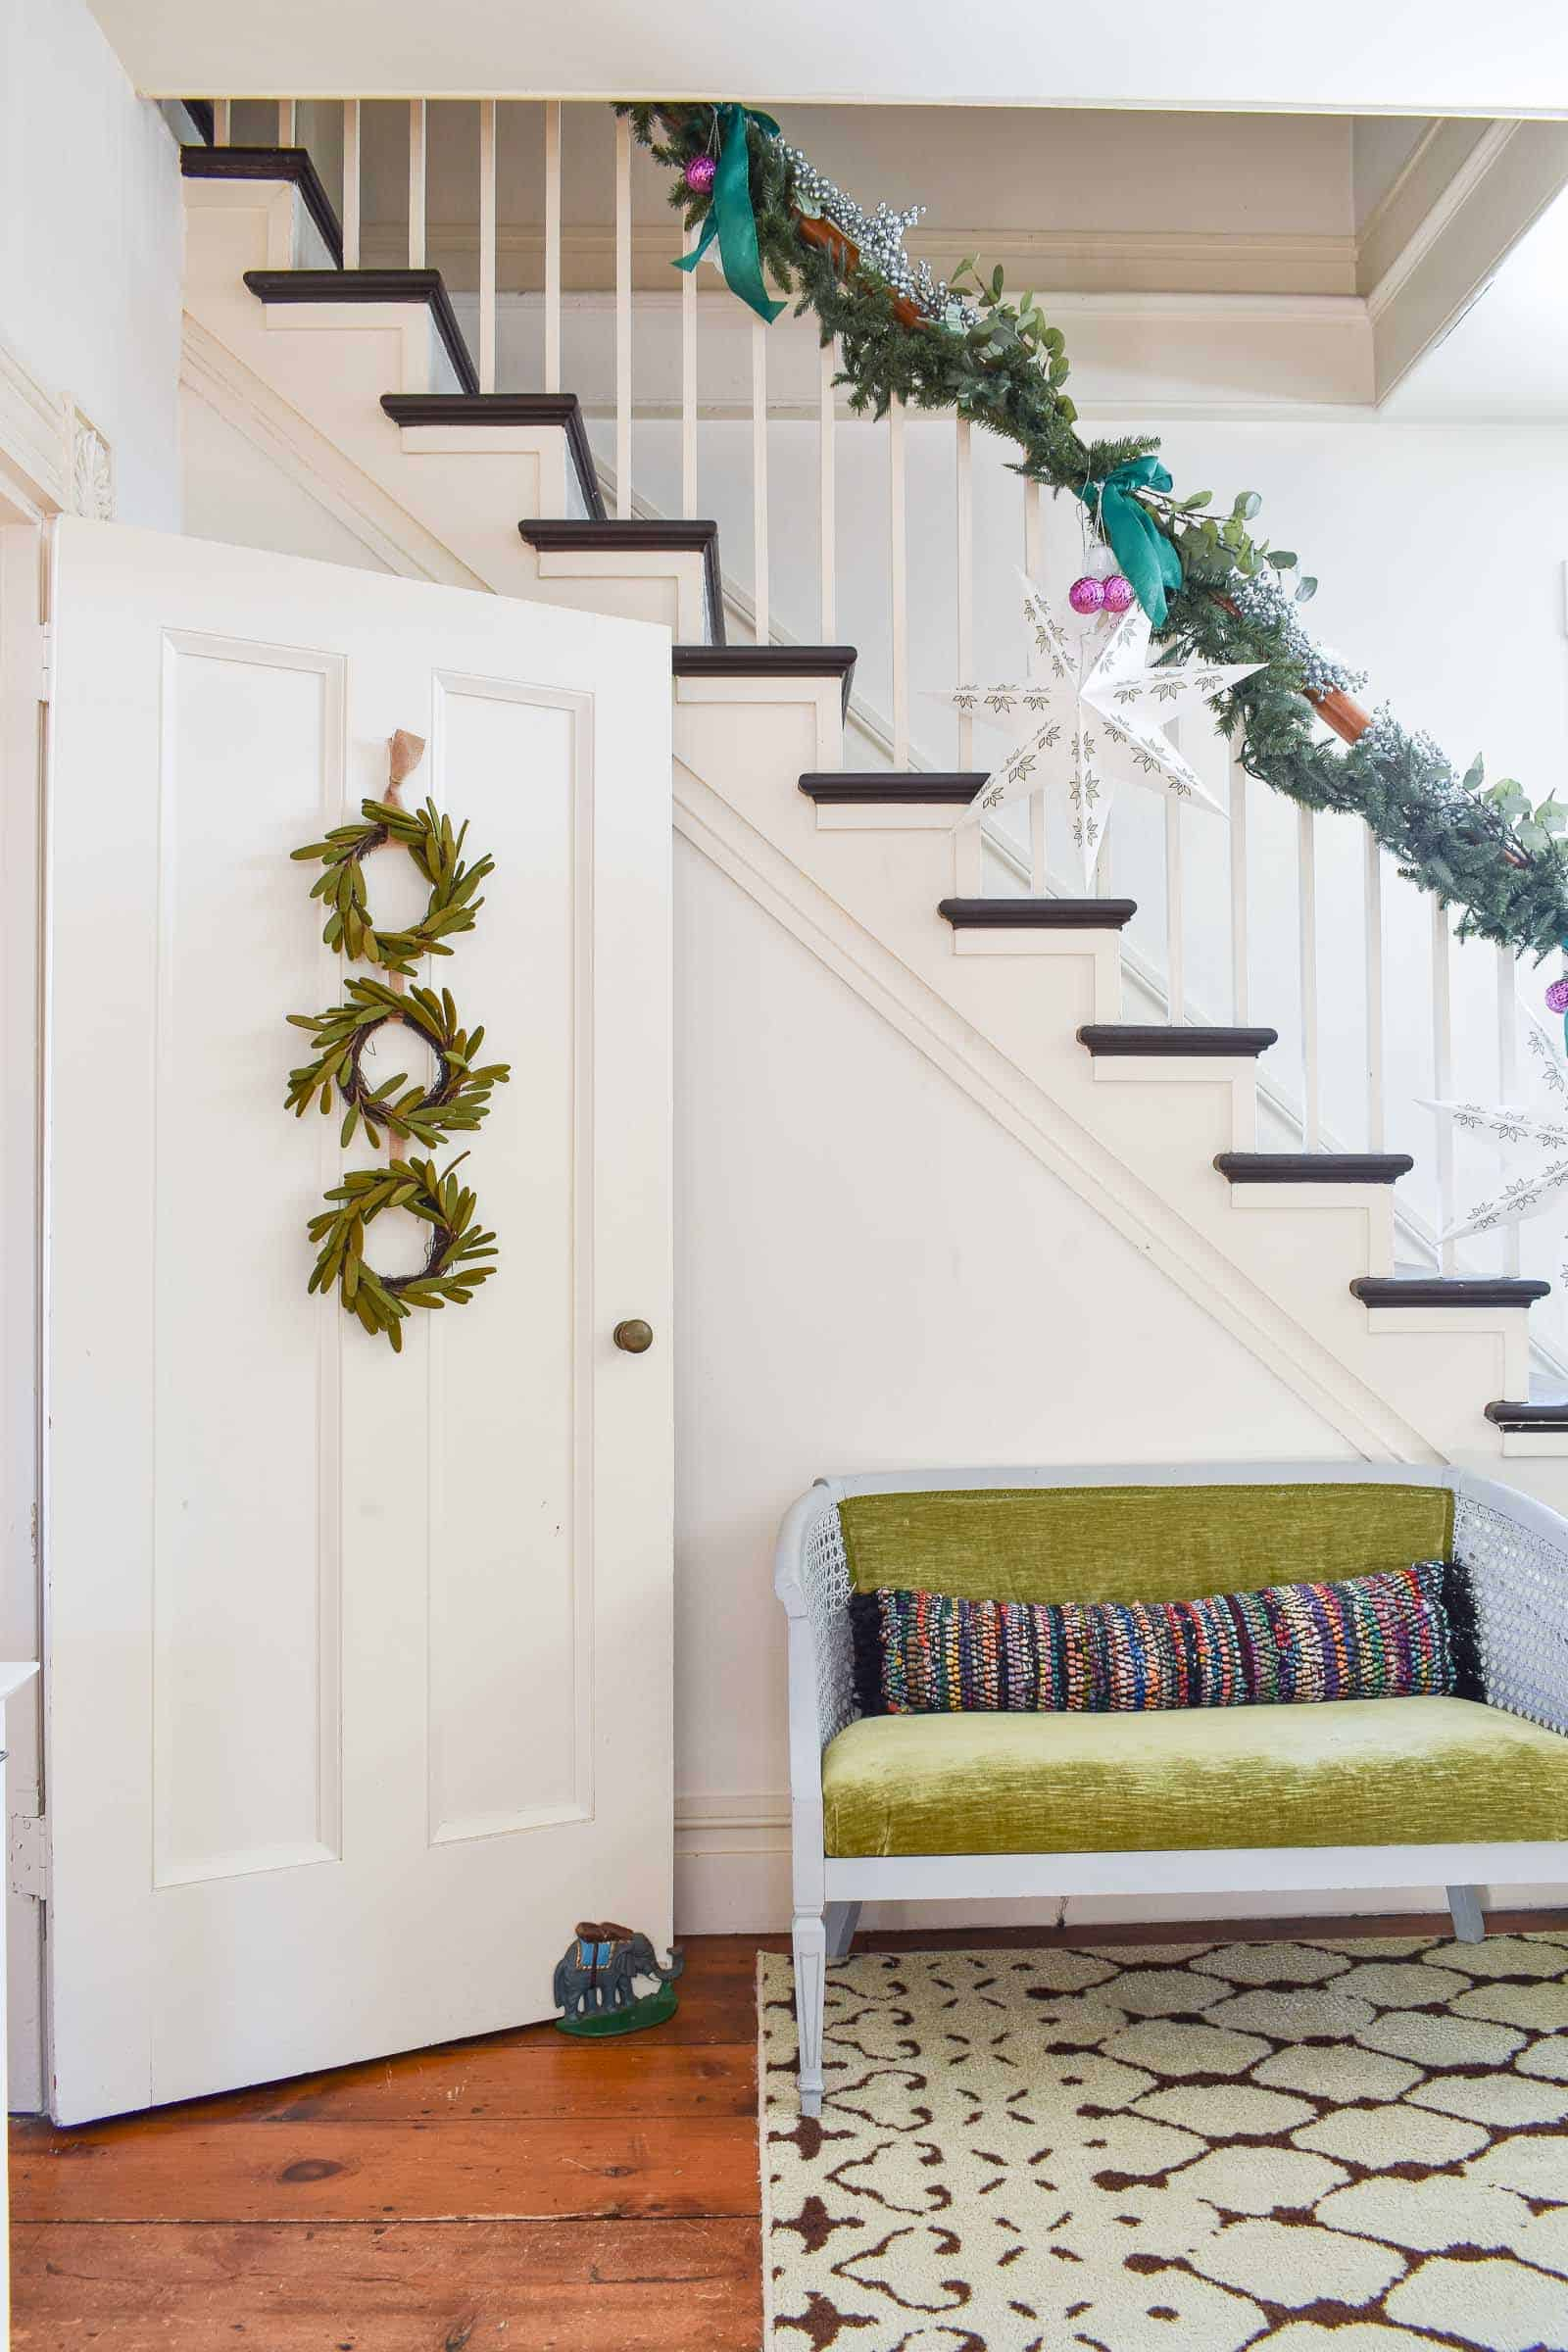 garland draped on banister in foyer